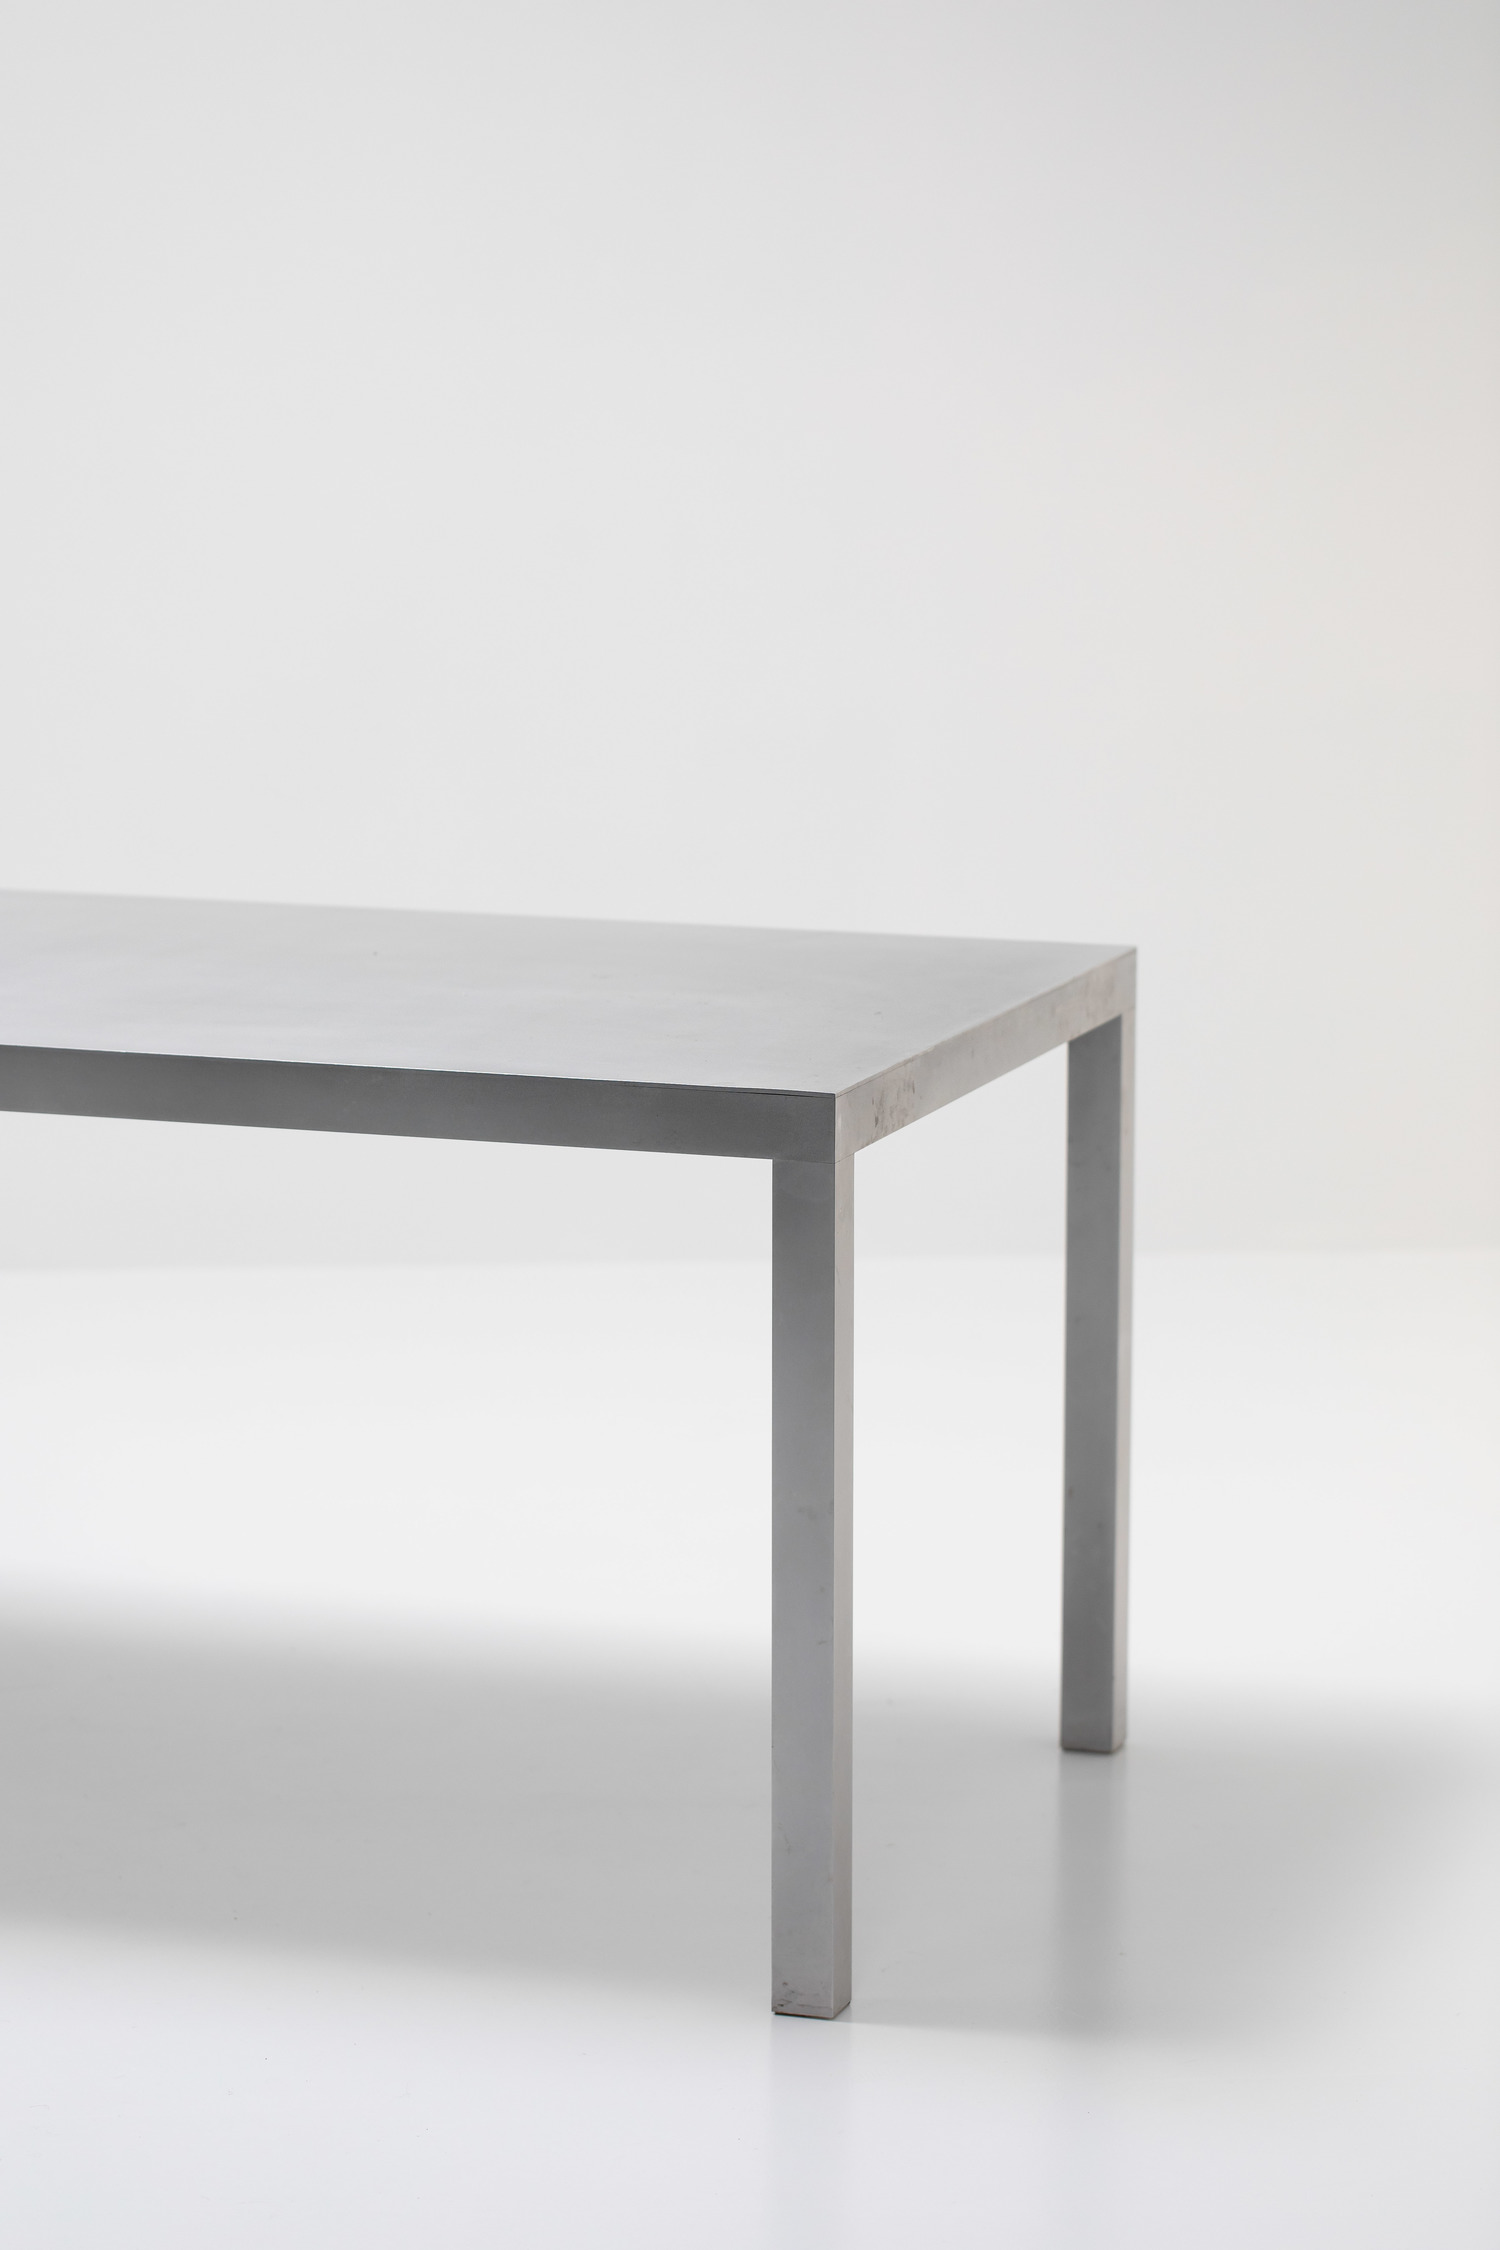 Maarten Van Severen aluminium table for Top Mouton